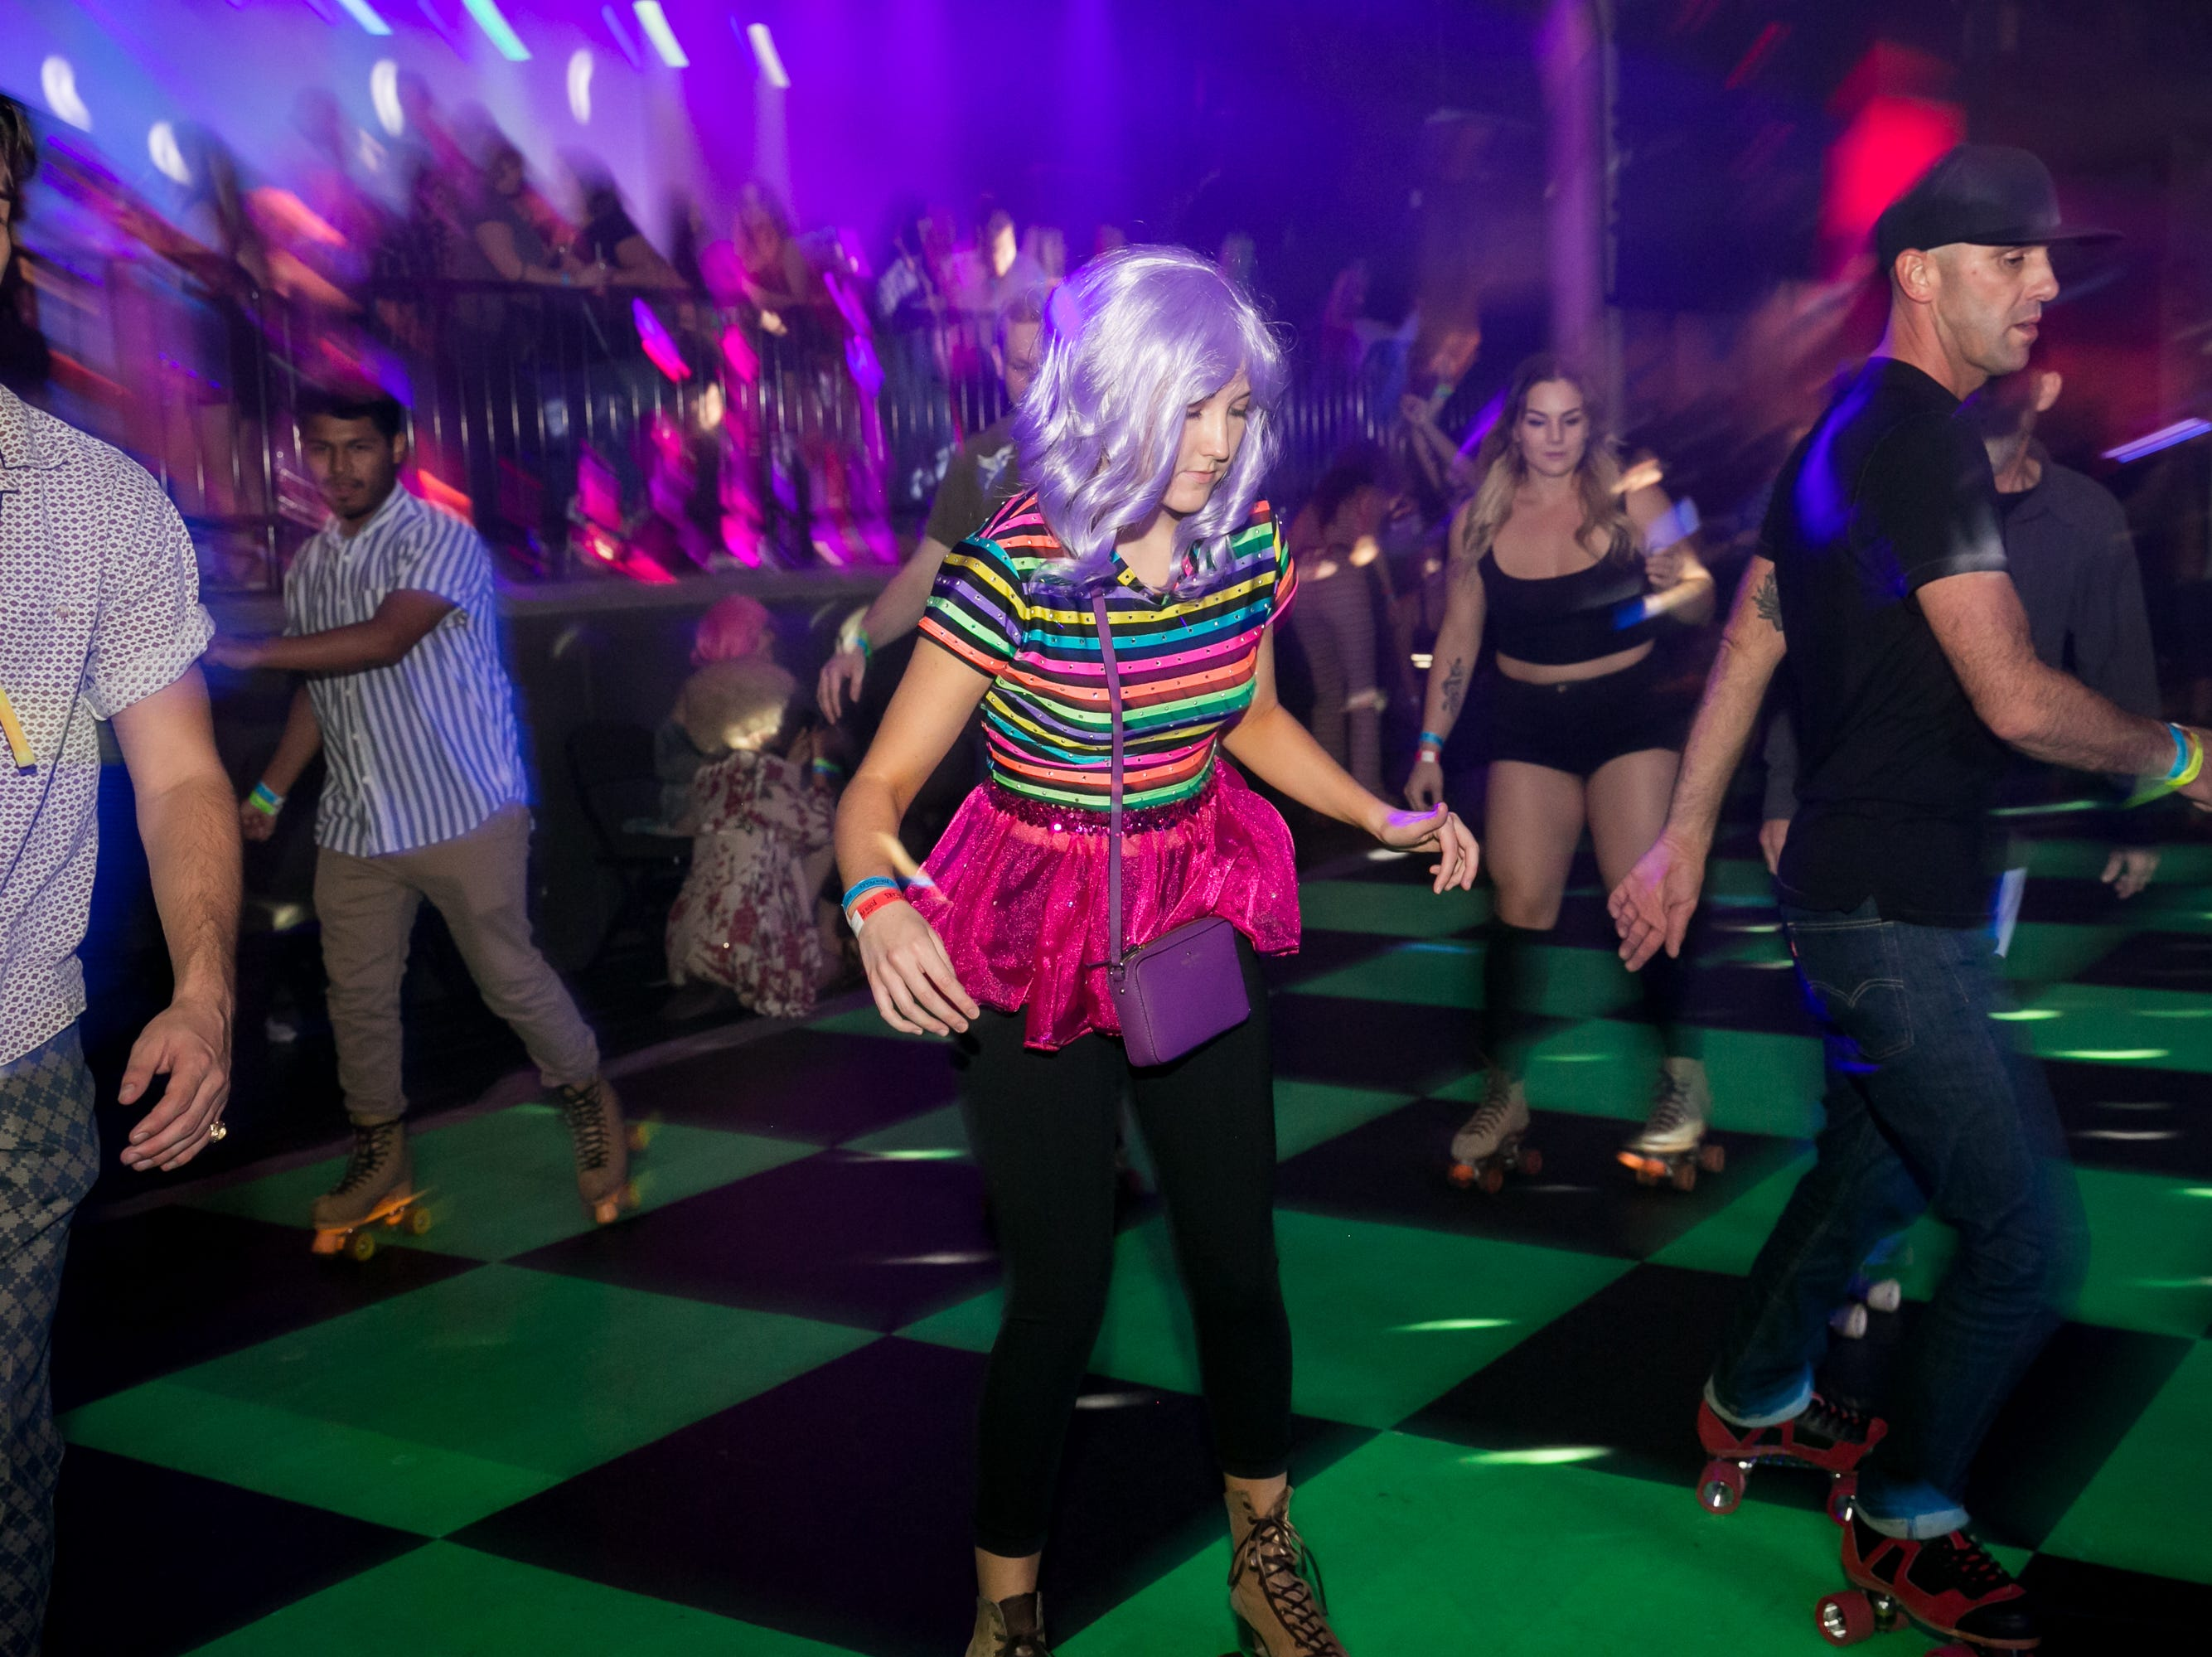 Skaters take to the rink during The Van Buren's Roller Disco Dance Party on Friday, September 21, 2018.